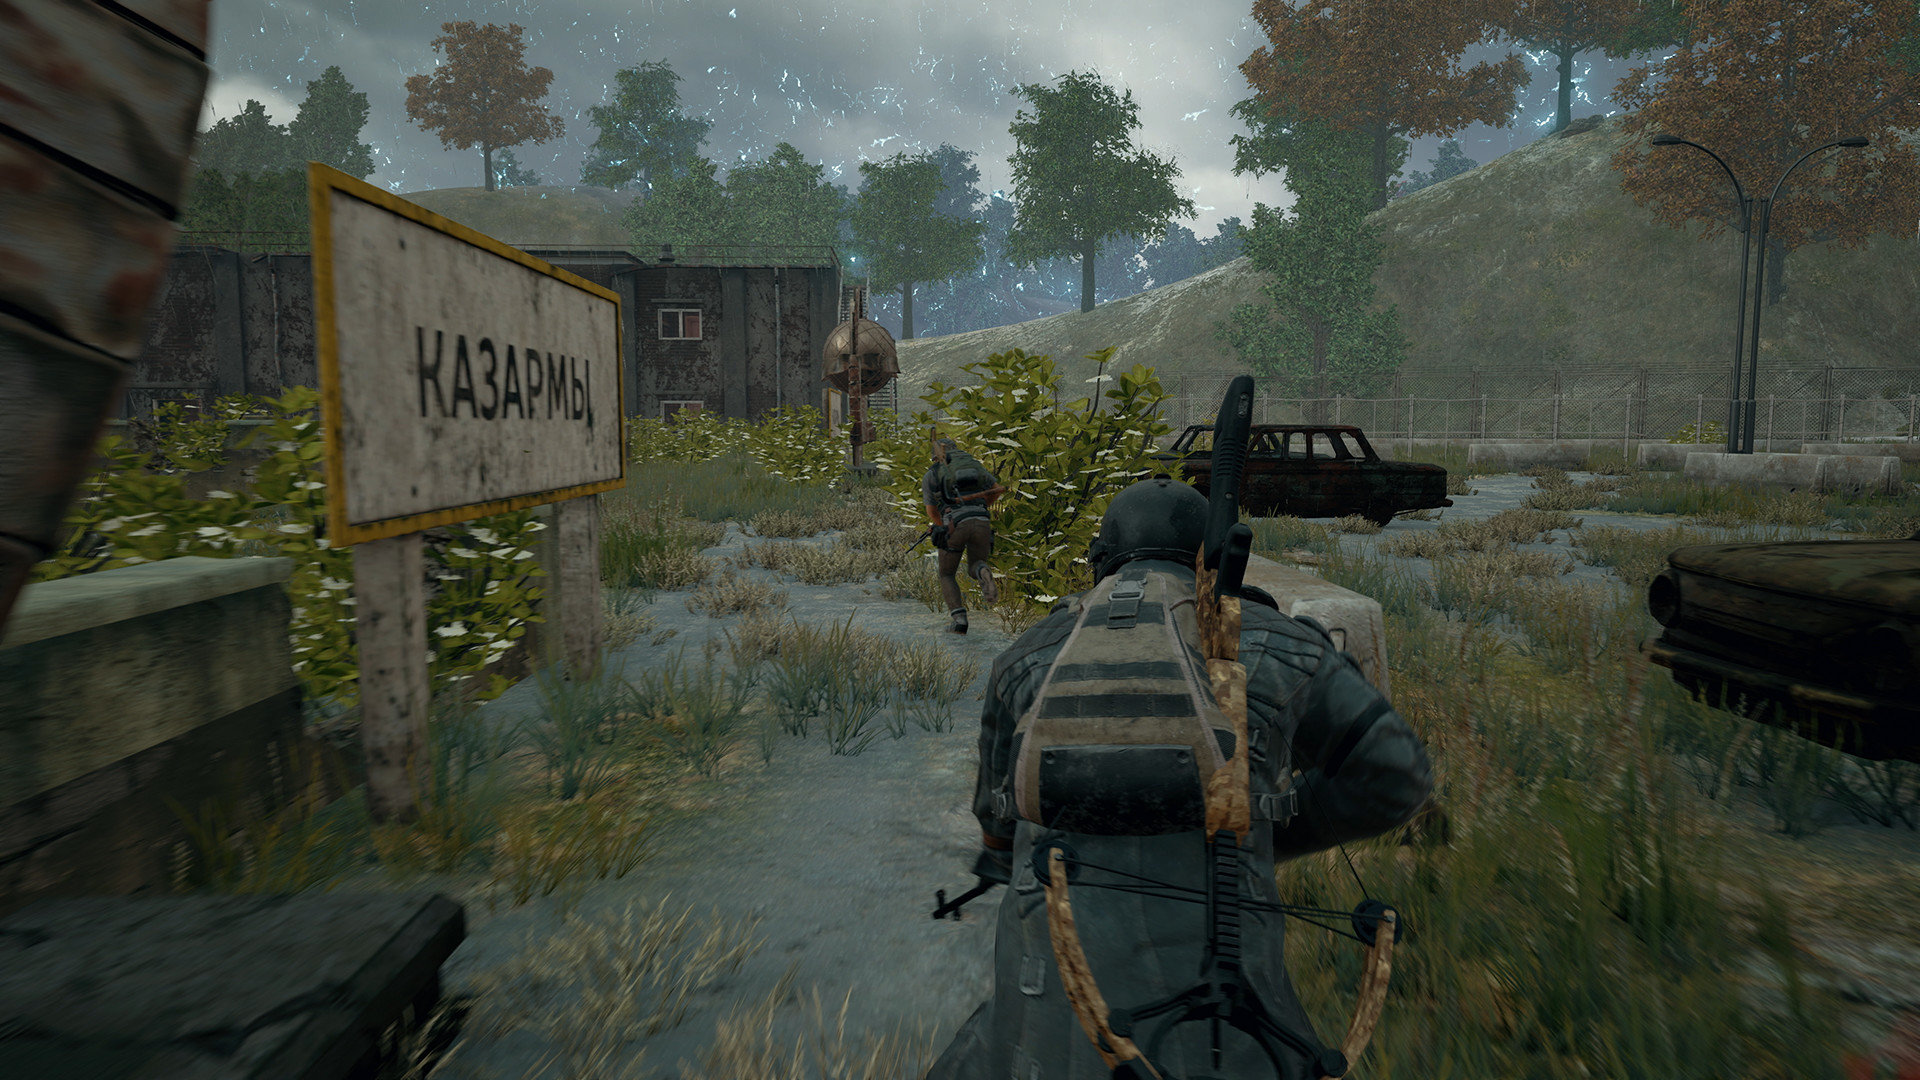 pc requirements for pubg